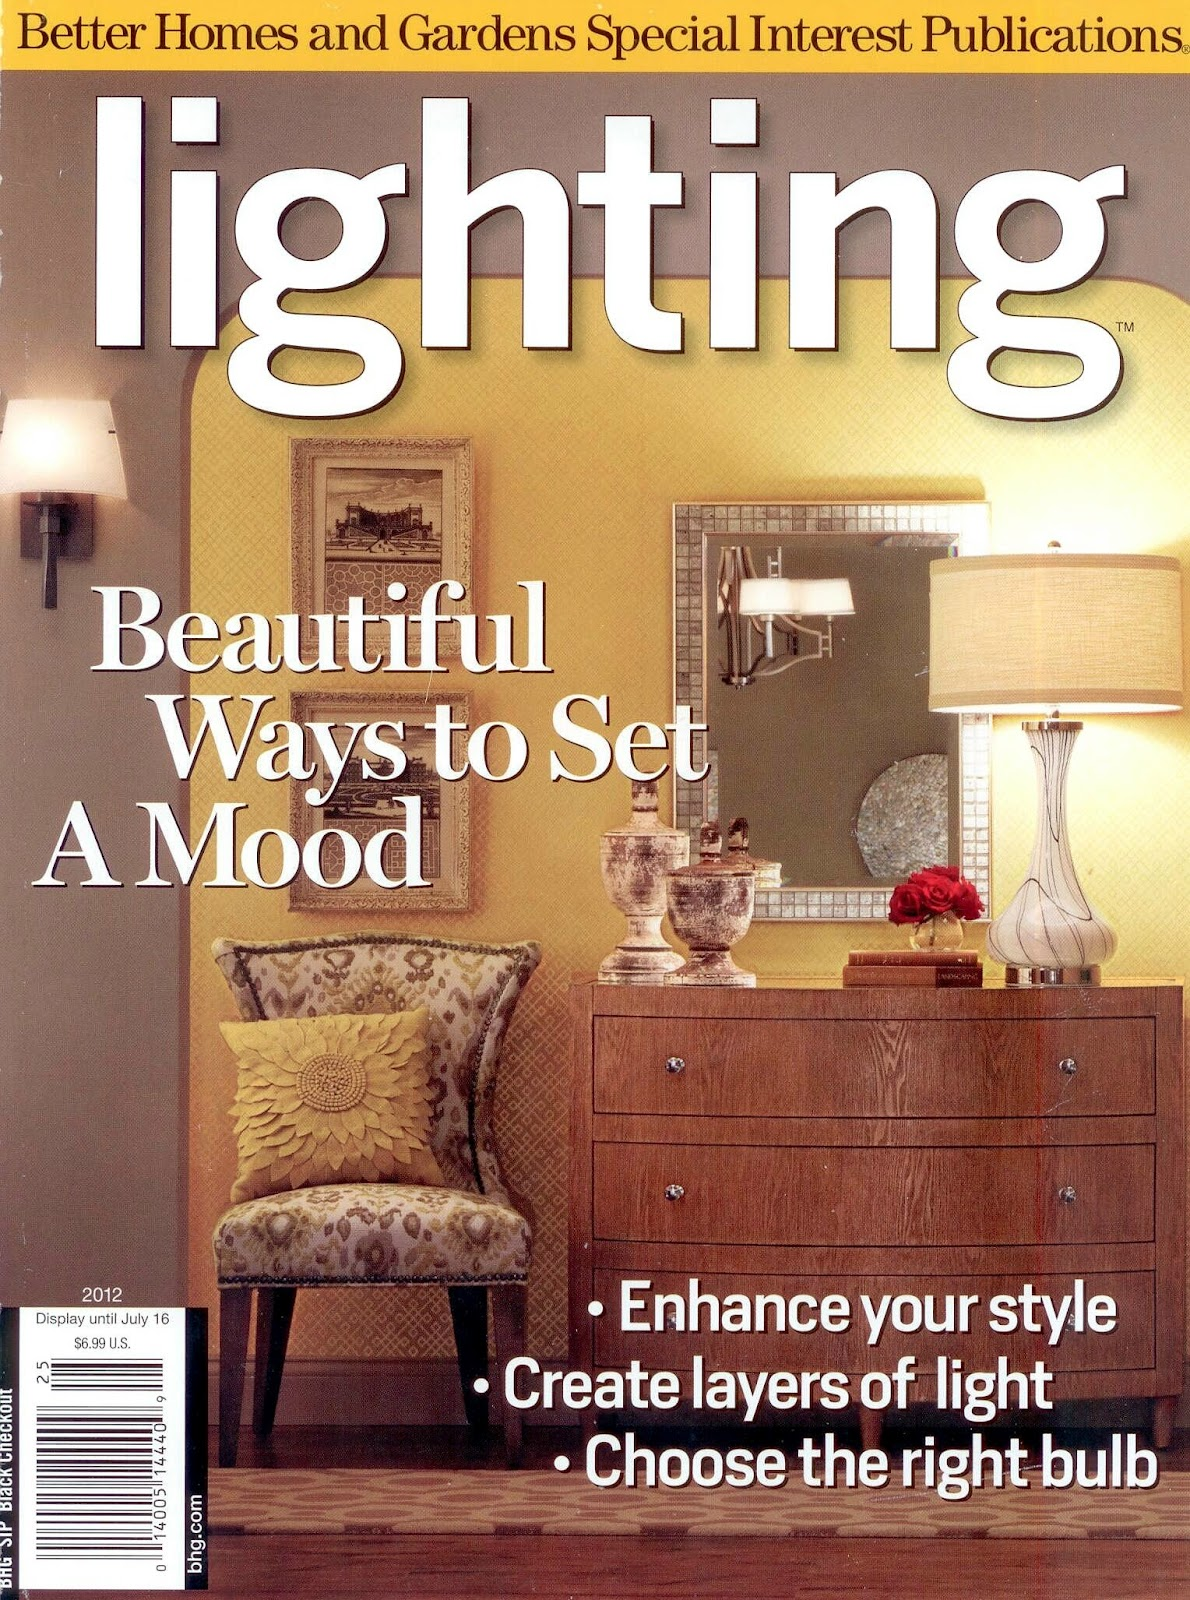 Better Homes And Gardens Magazine June 2017 Edition: Dominion Electric Lighting Blog: ALA's Better Homes And